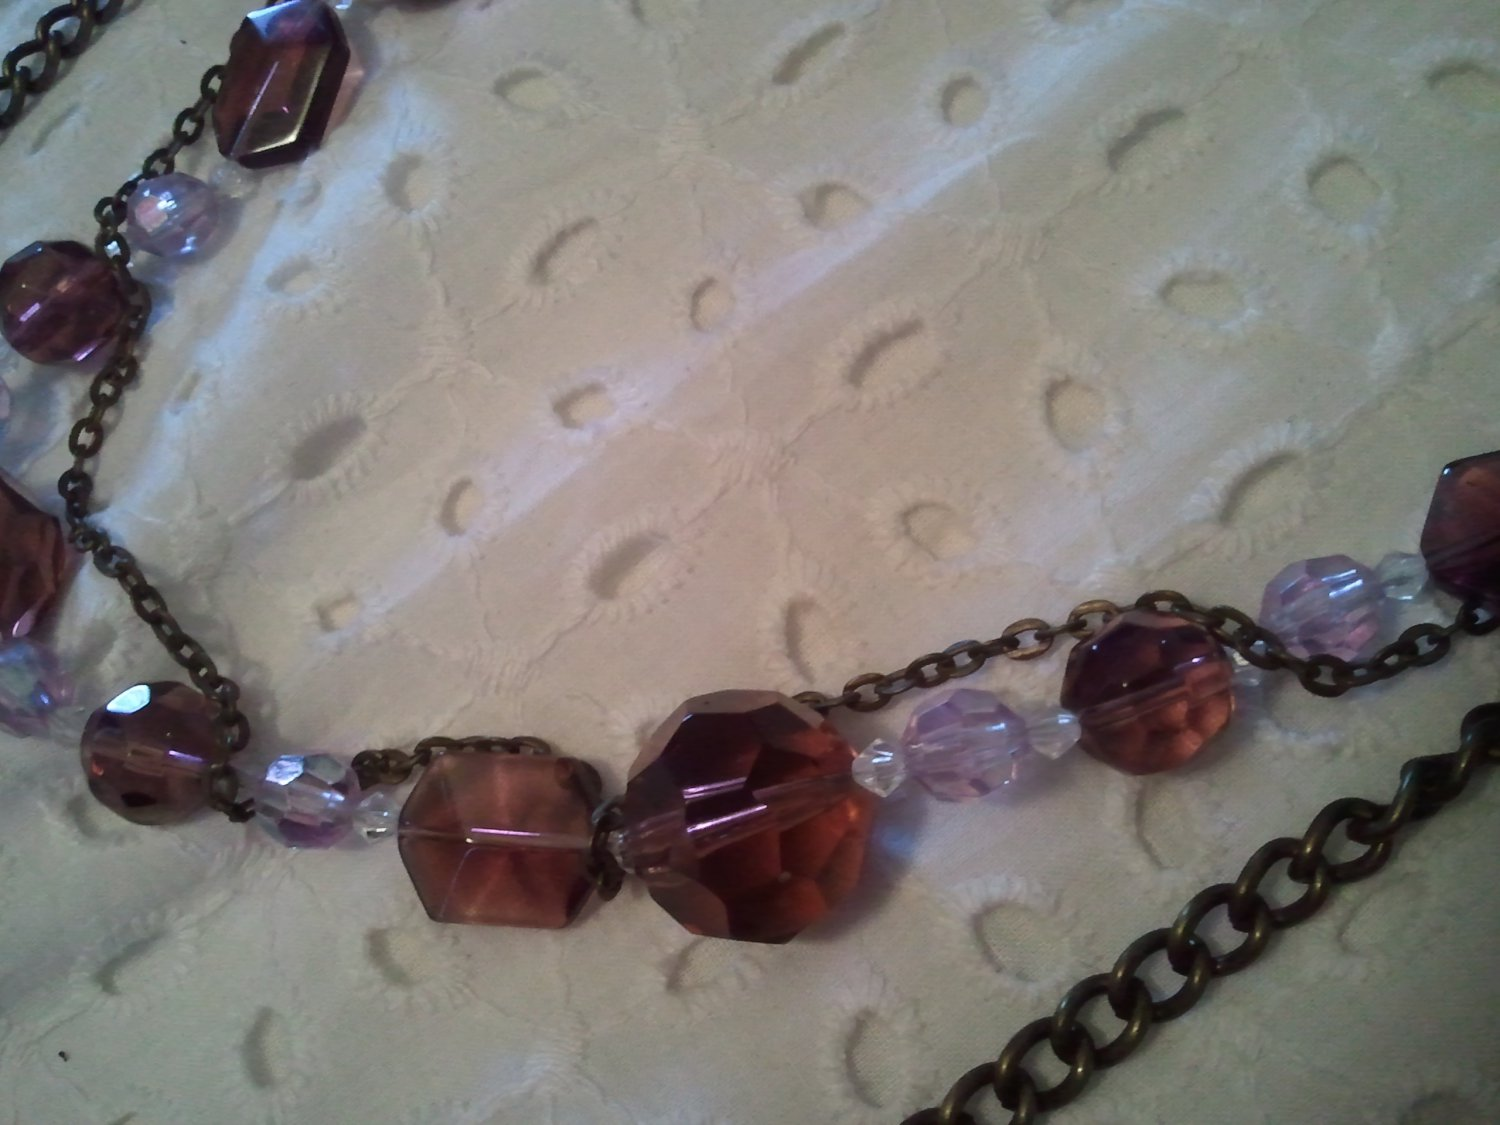 Genuine Lavender, Swarovski Crystals on Copper Chains, Long Necklace